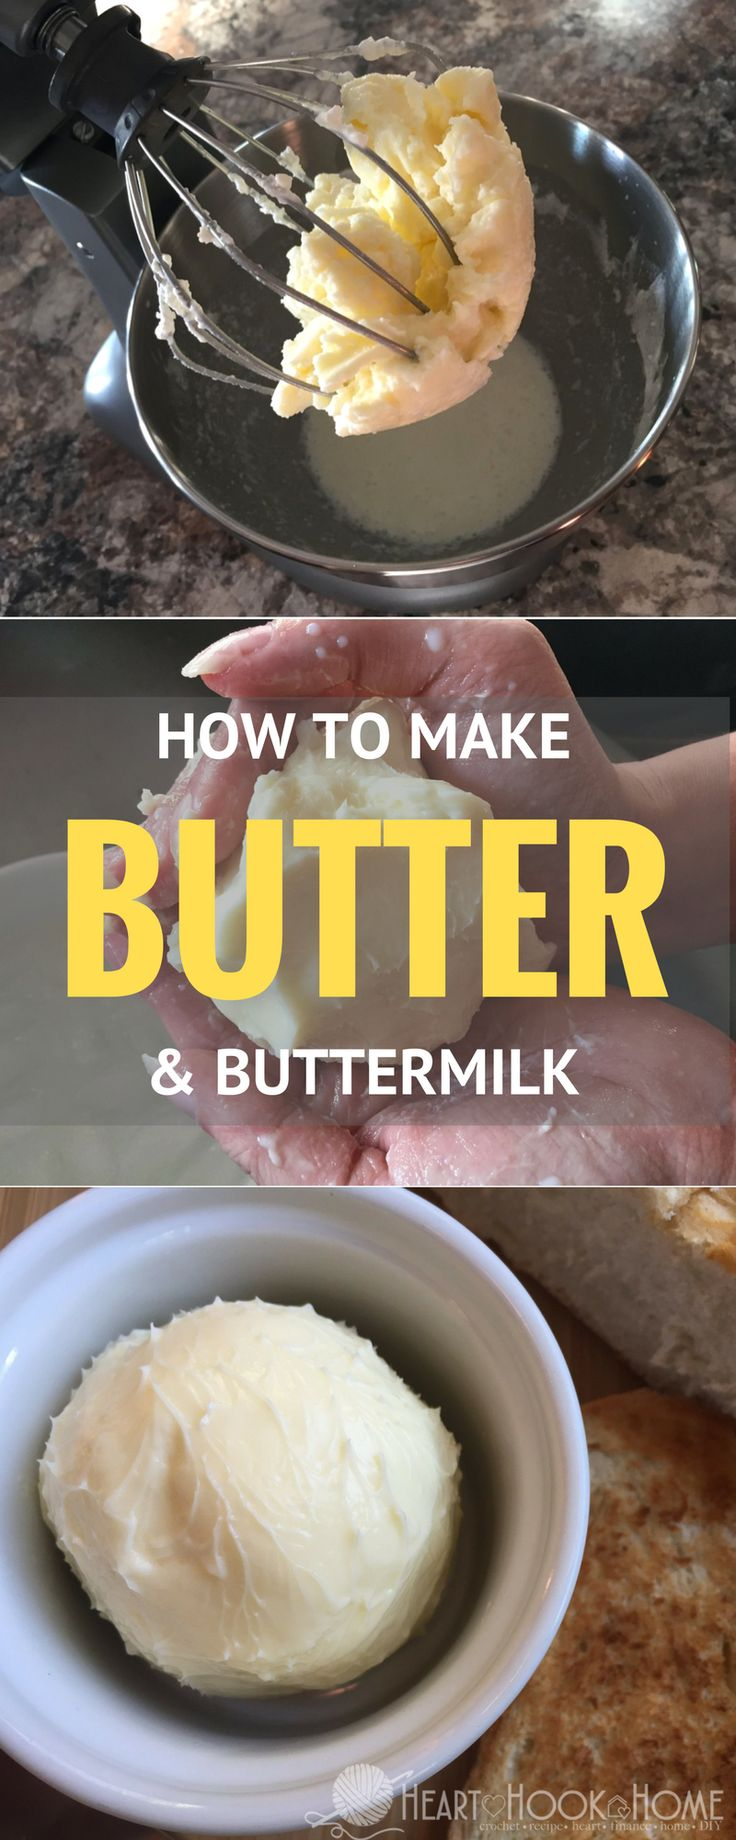 Homemade Butter (and Buttermilk!) Using a Kitchen Mixer http://hearthookhome.com/homemade-butter-and-buttermilk-with-kitchenaid-mixer/?utm_campaign=coschedule&utm_source=pinterest&utm_medium=Ashlea%20K%20-%20Heart%2C%20Hook%2C%20Home&utm_content=Homemade%20Butter%20%28and%20Buttermilk%21%29%20Using%20a%20Kitchen%20Mixer